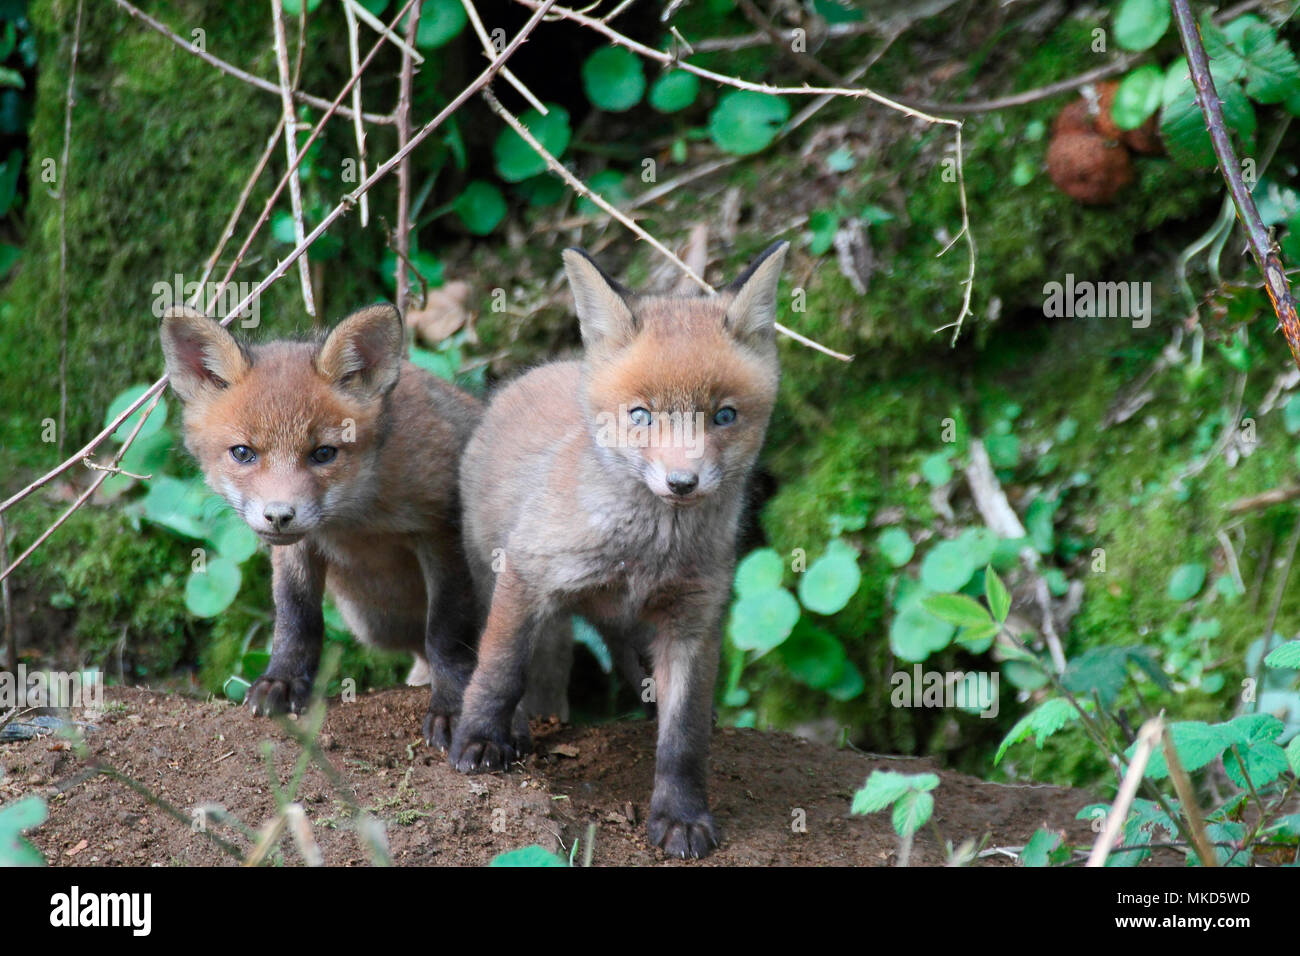 Red fox (Vulpes vulpes) youngs about 5 weeks old out of the burrow, Brittany, France - Stock Image